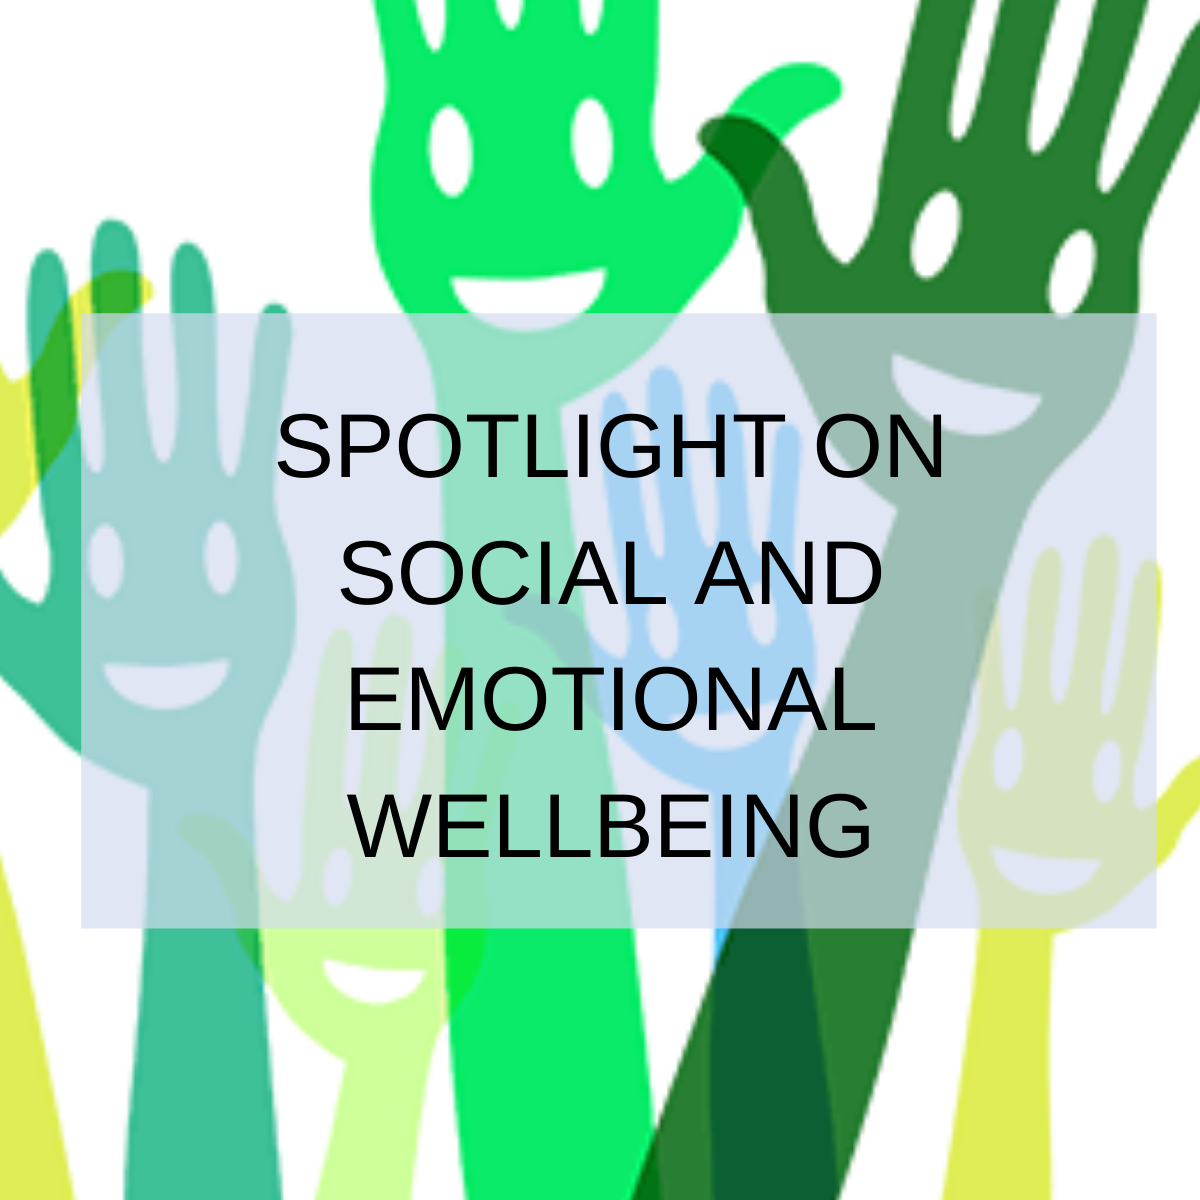 Spotlight on Social and Emotional Wellbeing